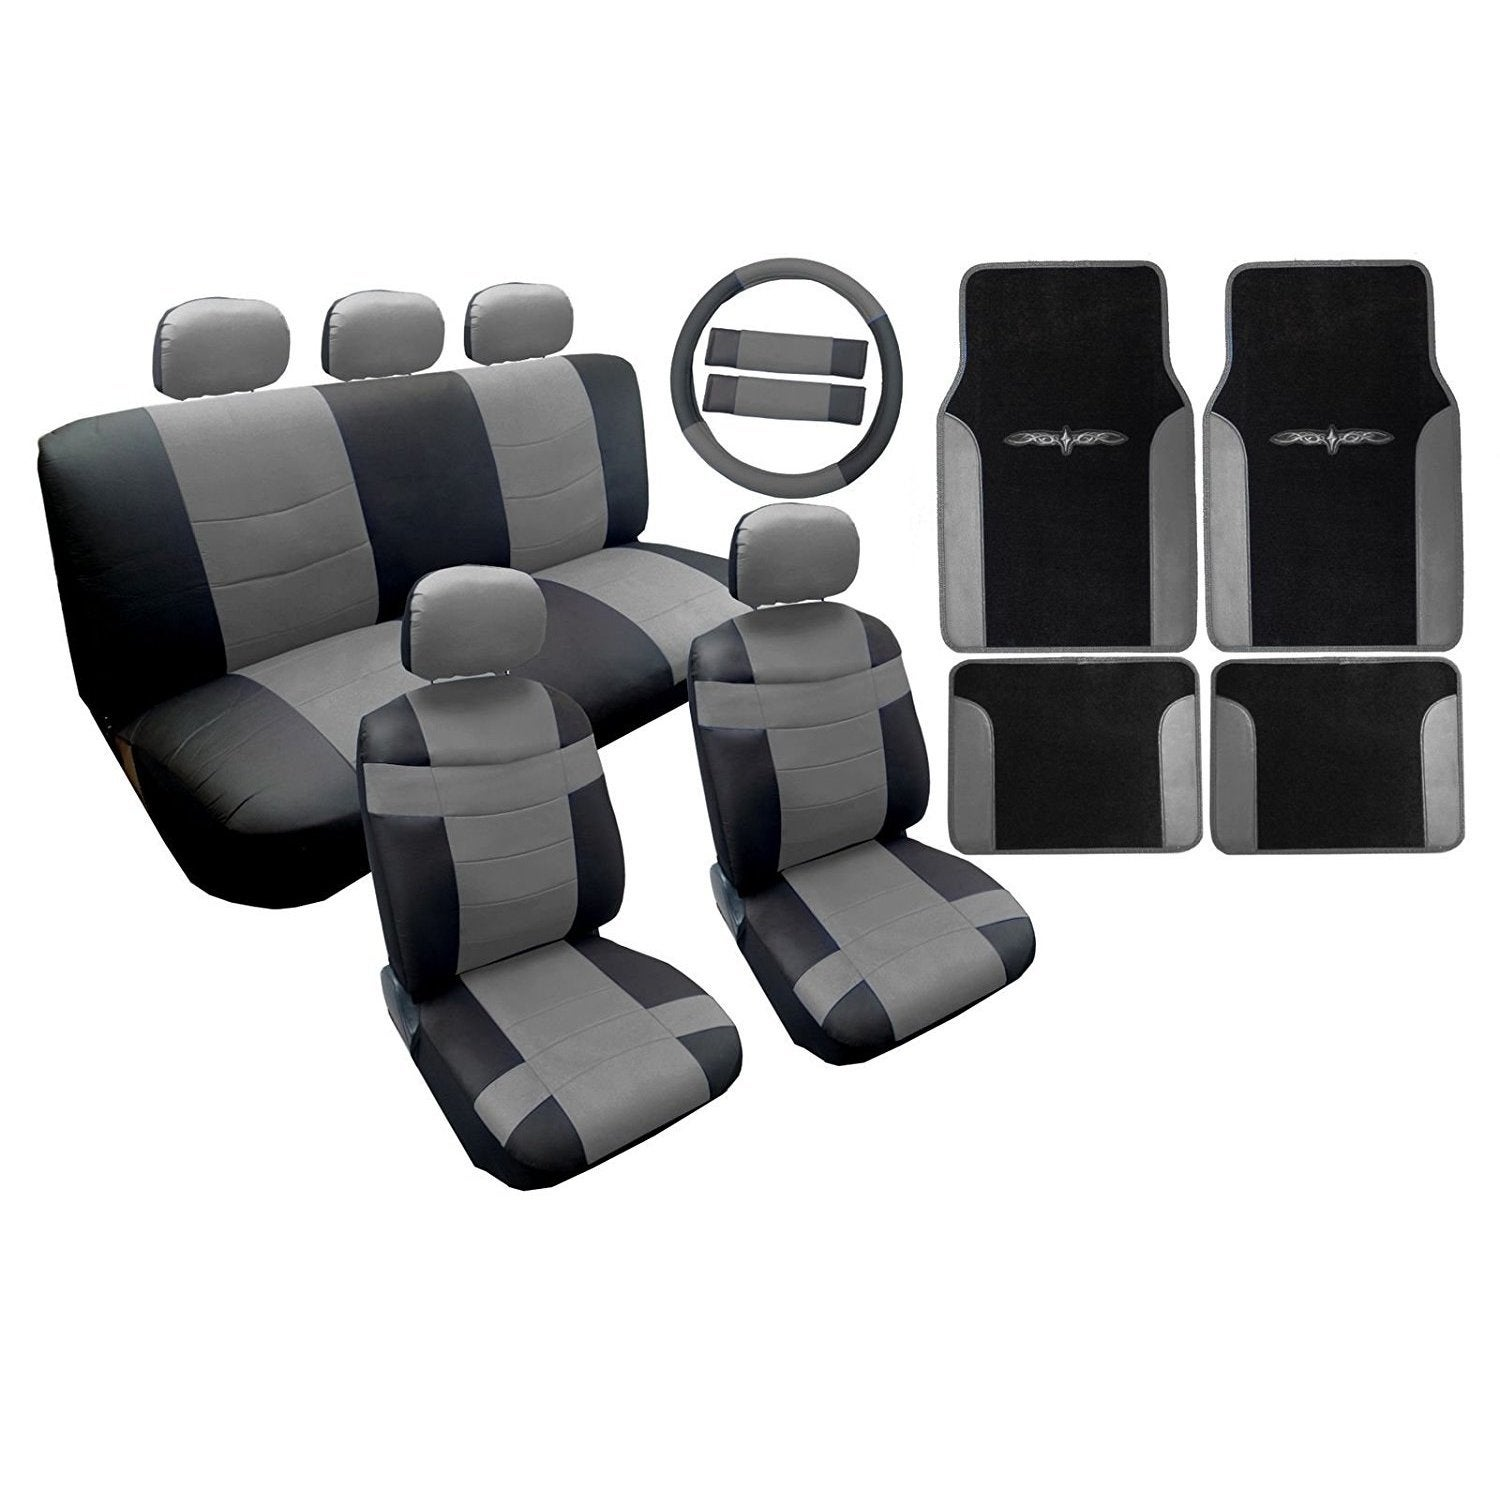 Two Tone Leather Seat Cover Black & Gray with Mats 18pc Toyota